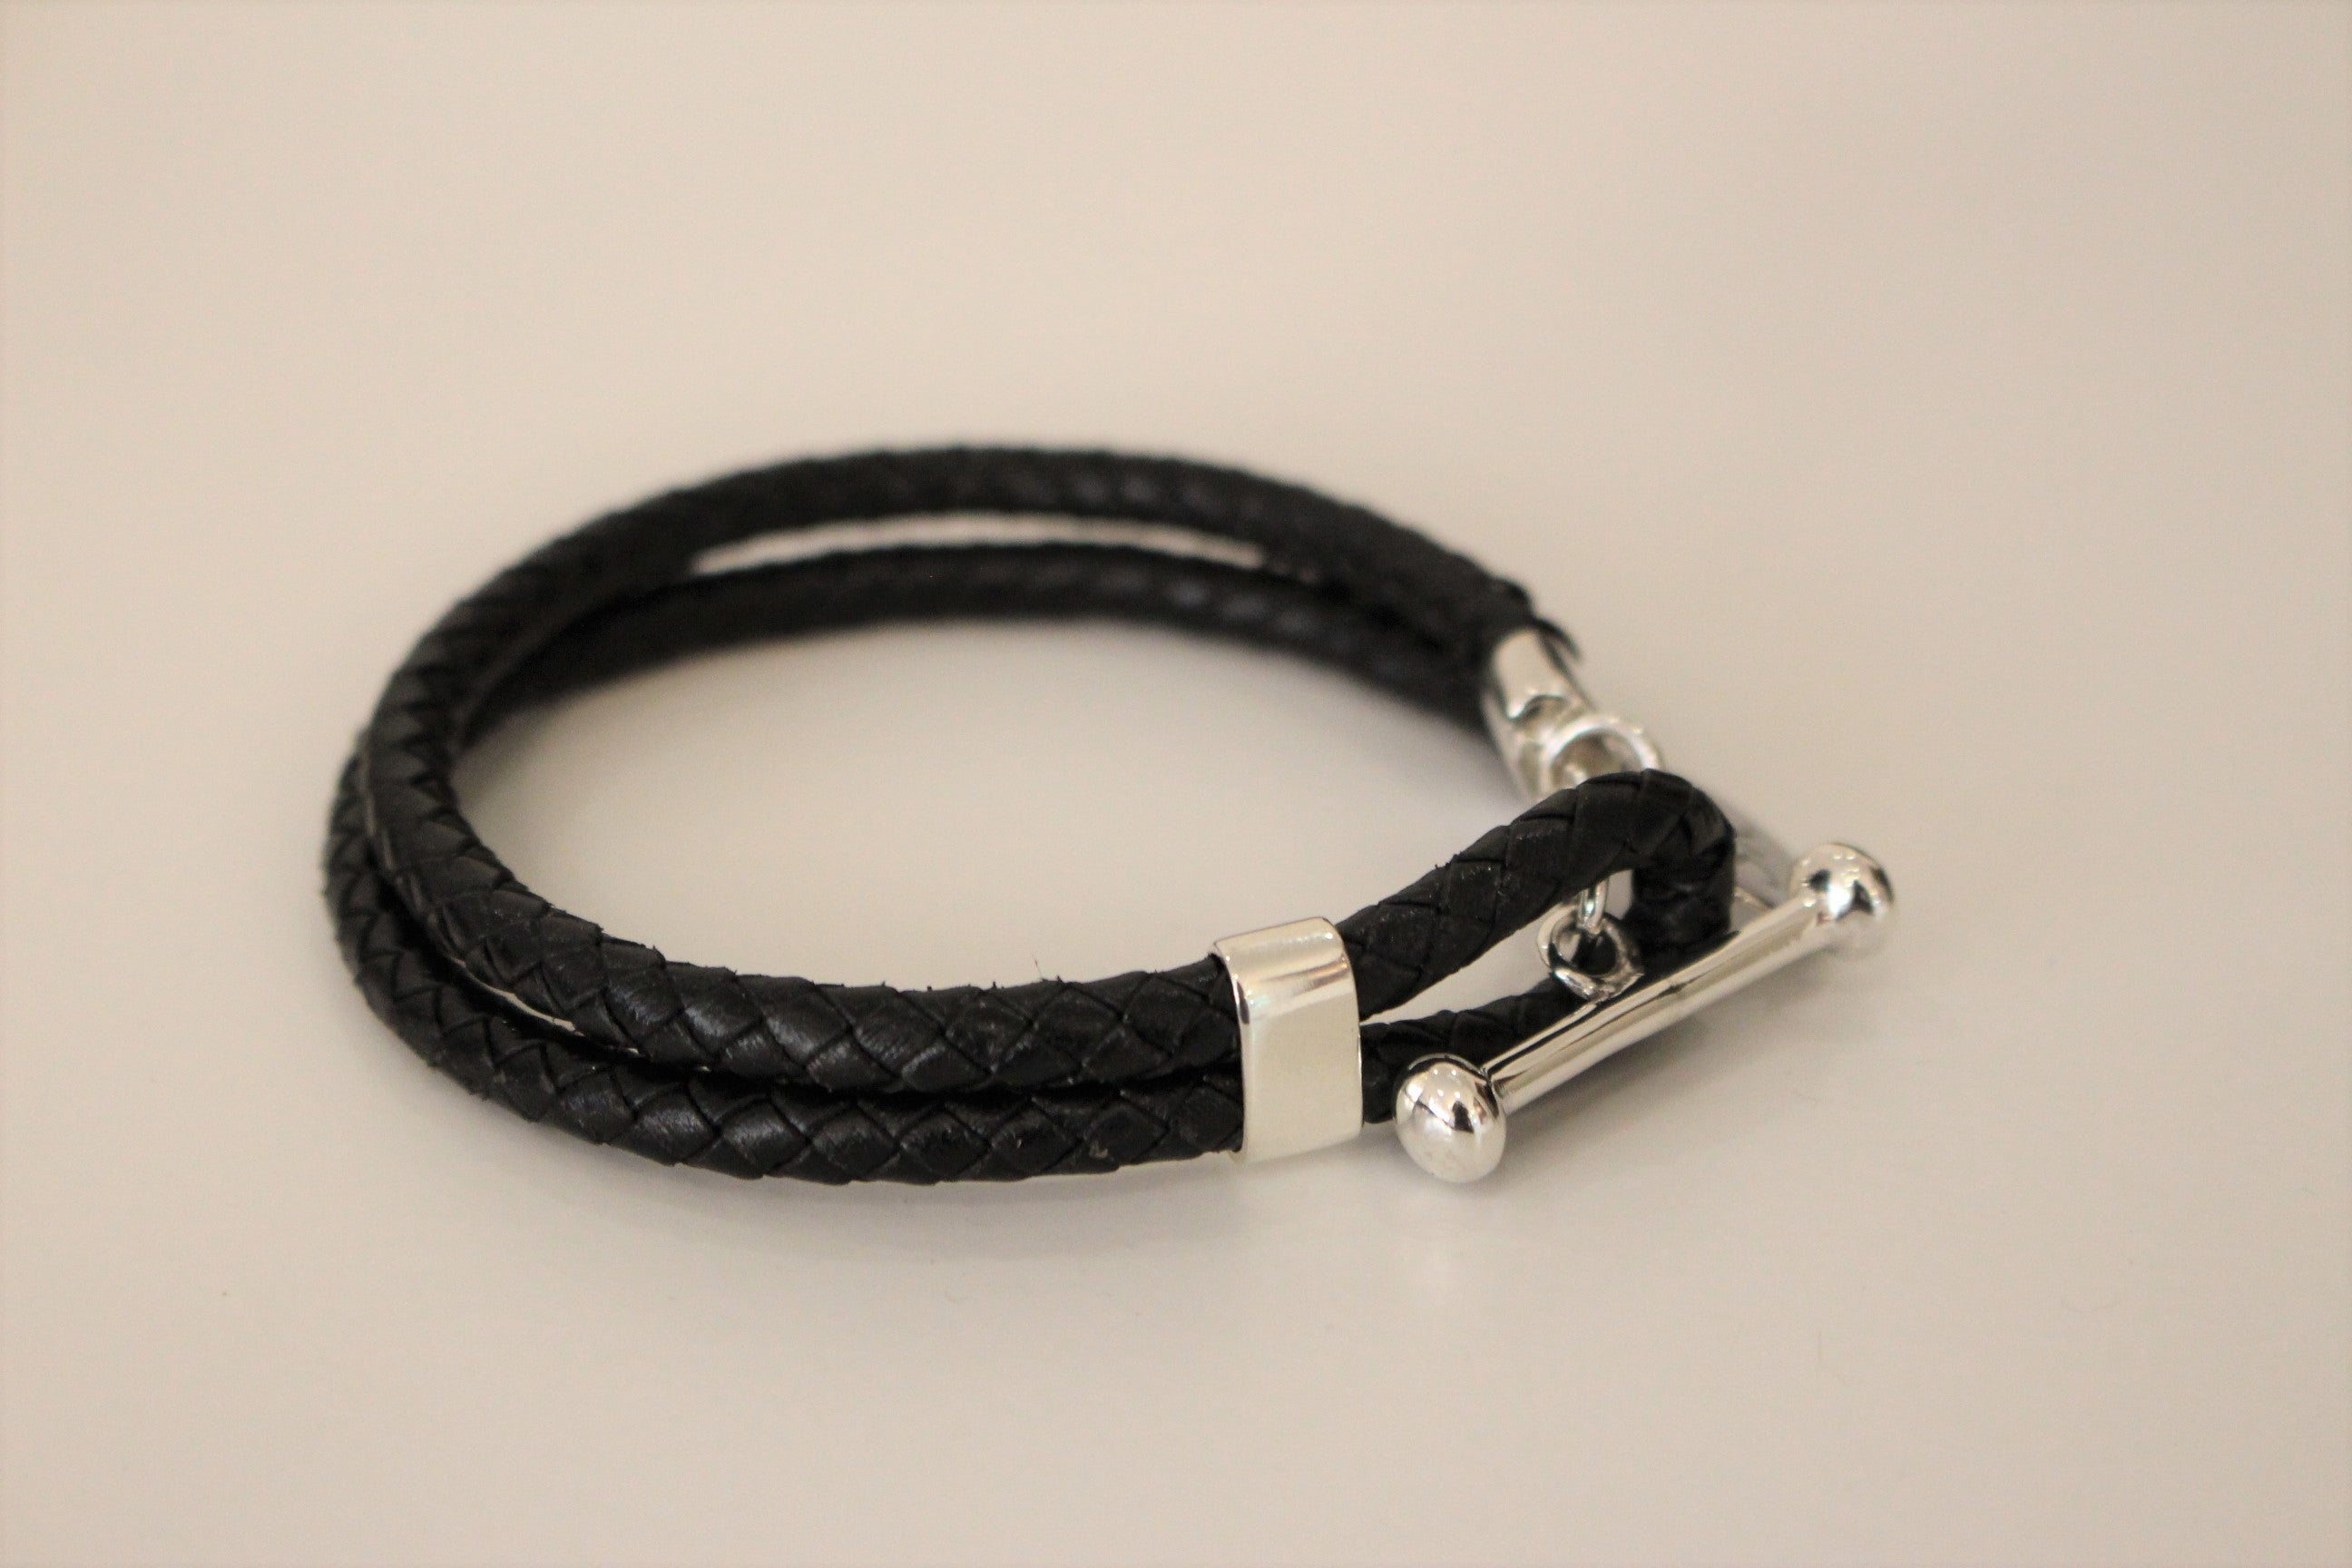 Black Leather Bracelet with Name Tag